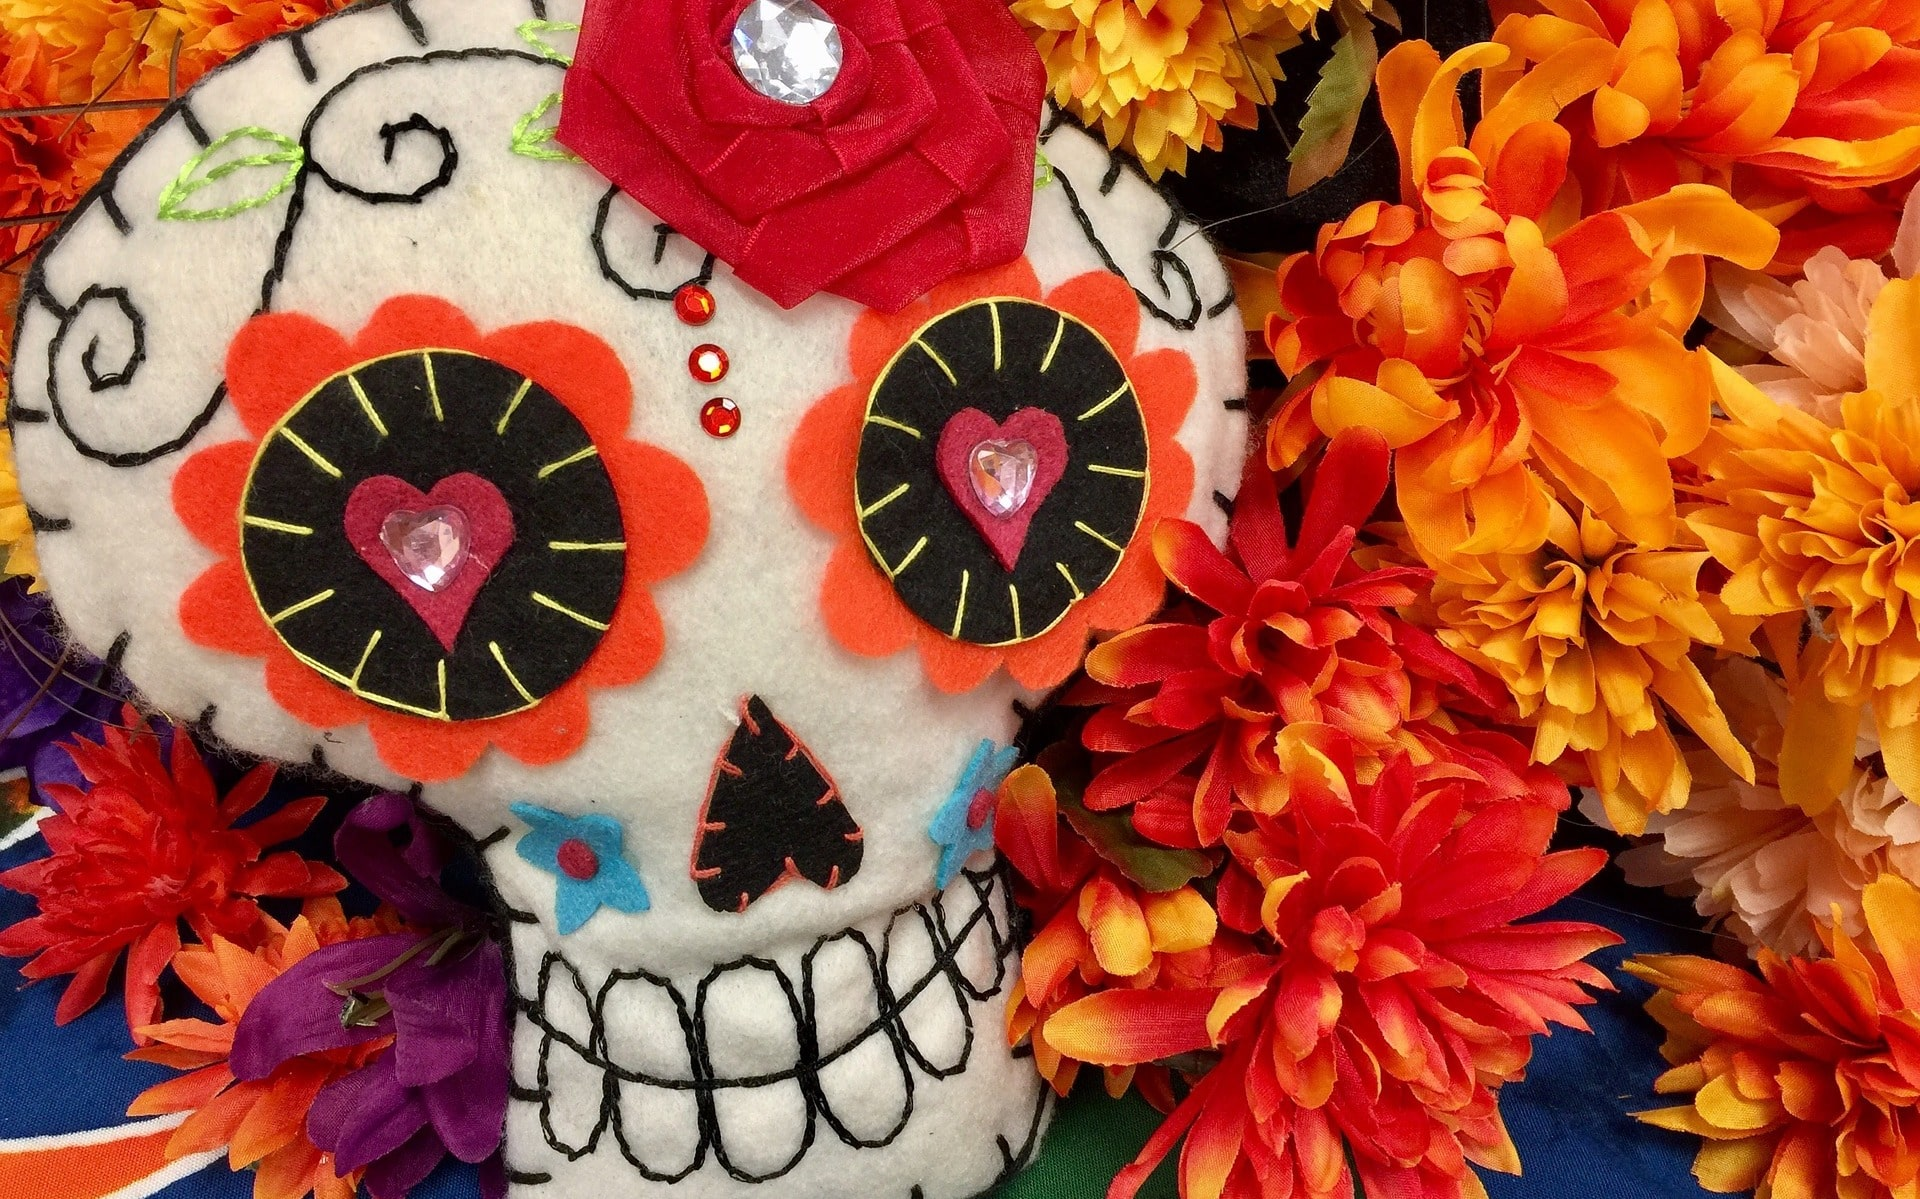 Marigolds Are a Day of the Dead Tradition